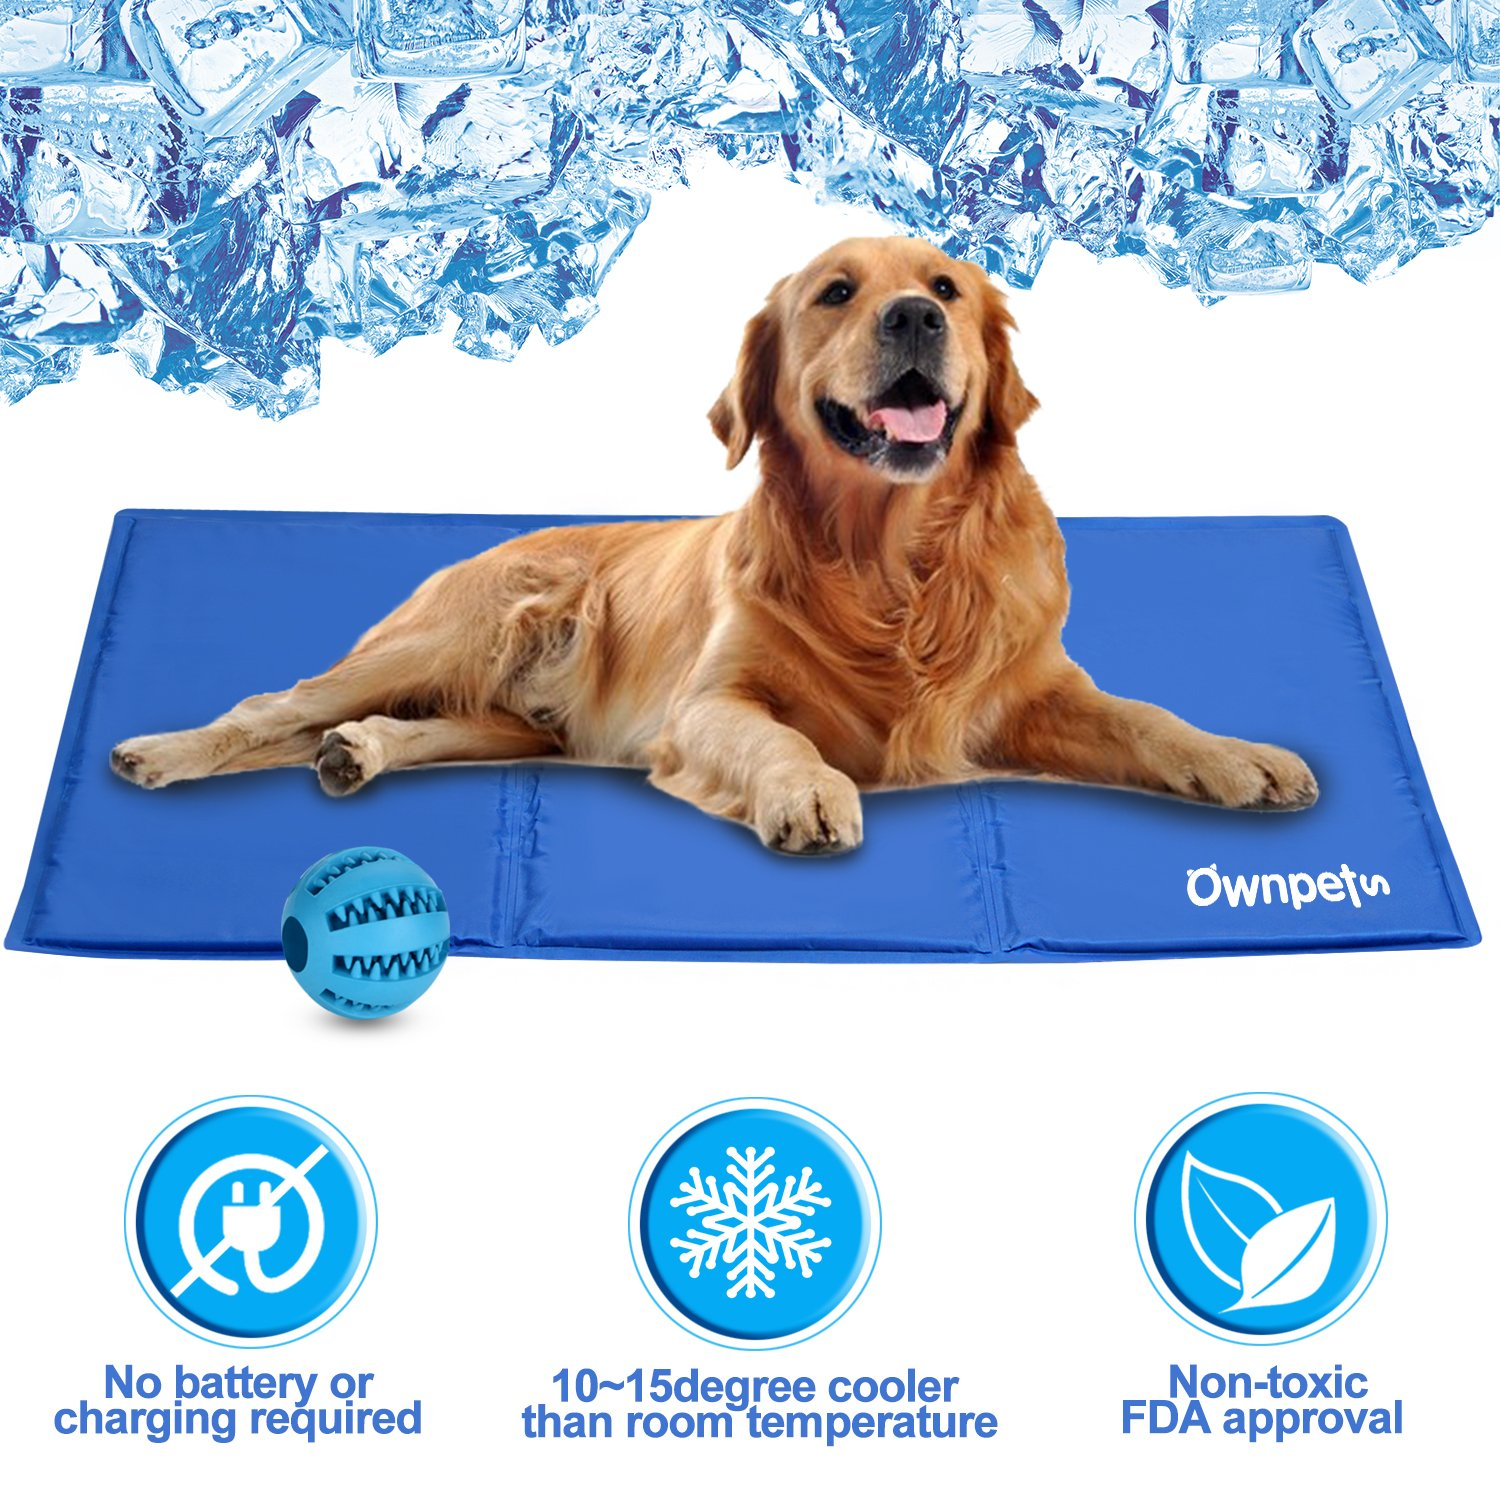 OWNPETS Pet Self Cooling Gel Pad/Cooling Mat, Anti-inflammatory, 100% Safe Non-toxic Materials, For All Dogs, Cats with Pet Toy Ball, 36x20